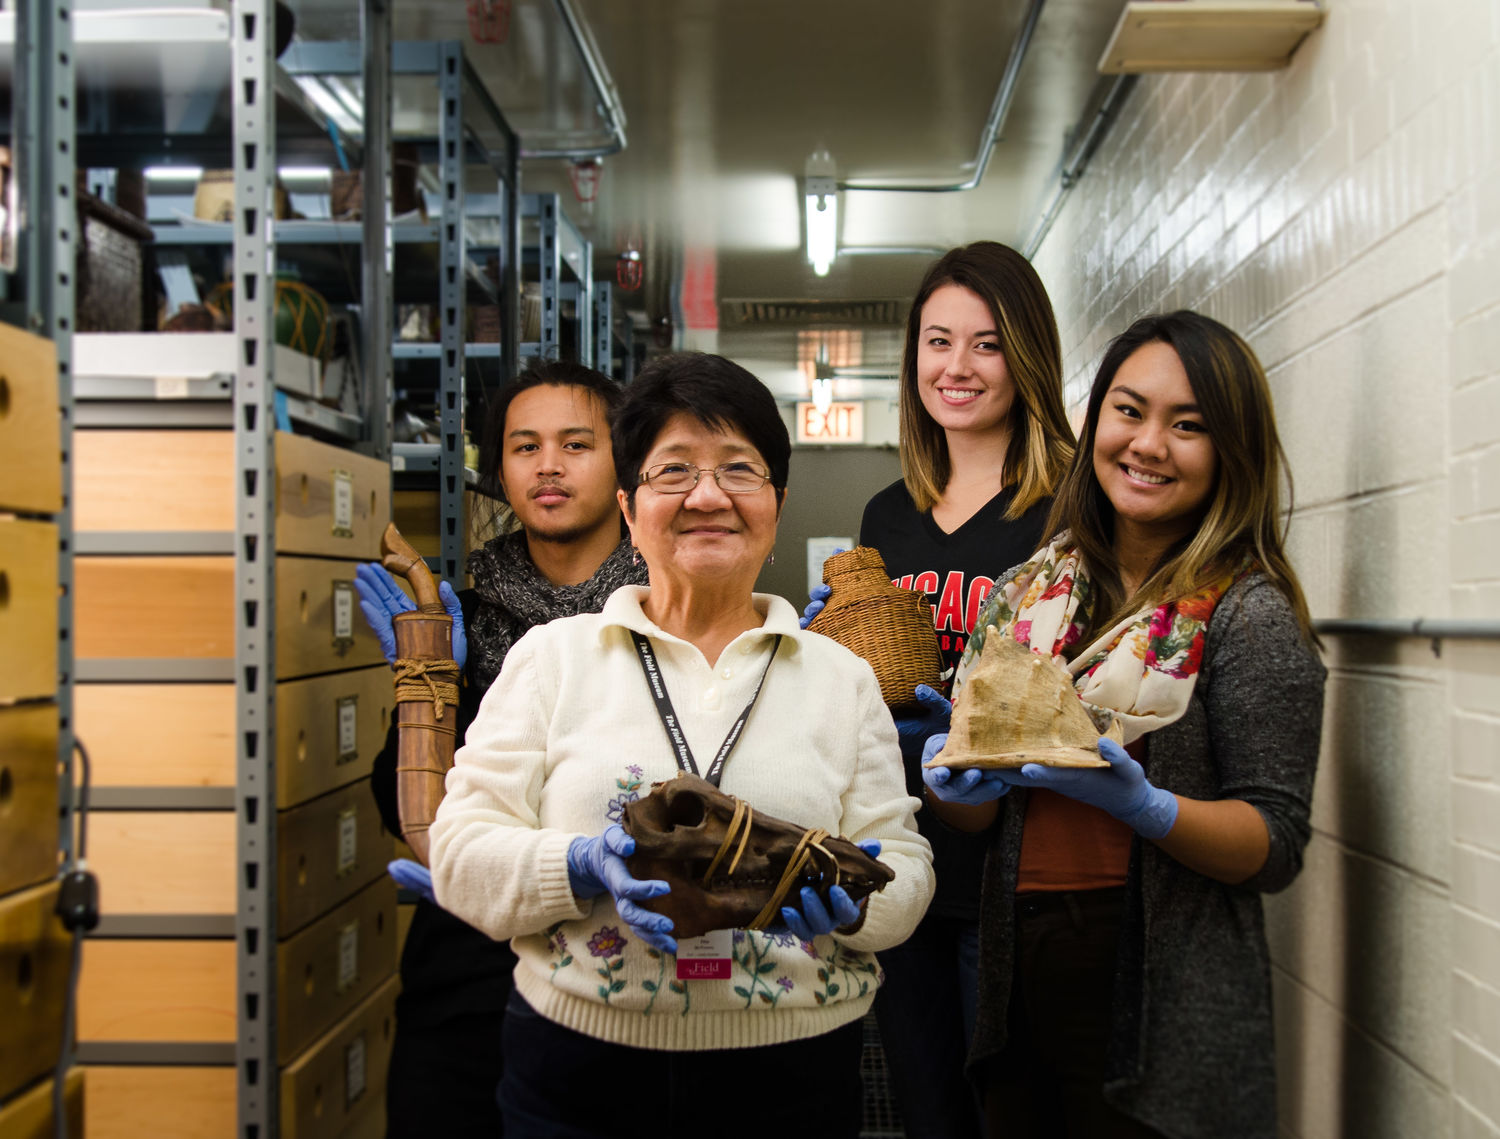 Image depicting volunteers Etta McKenna, Oscar Docto, Tess Madden, and Alpha Sadcopen posing with objects within CAS Mezzanine storeroom. Selected for use on the homepage of the Philippine Heritage Collections interactive web portal. (c) Field Museum of Natural History - CC BY-NC 4.0